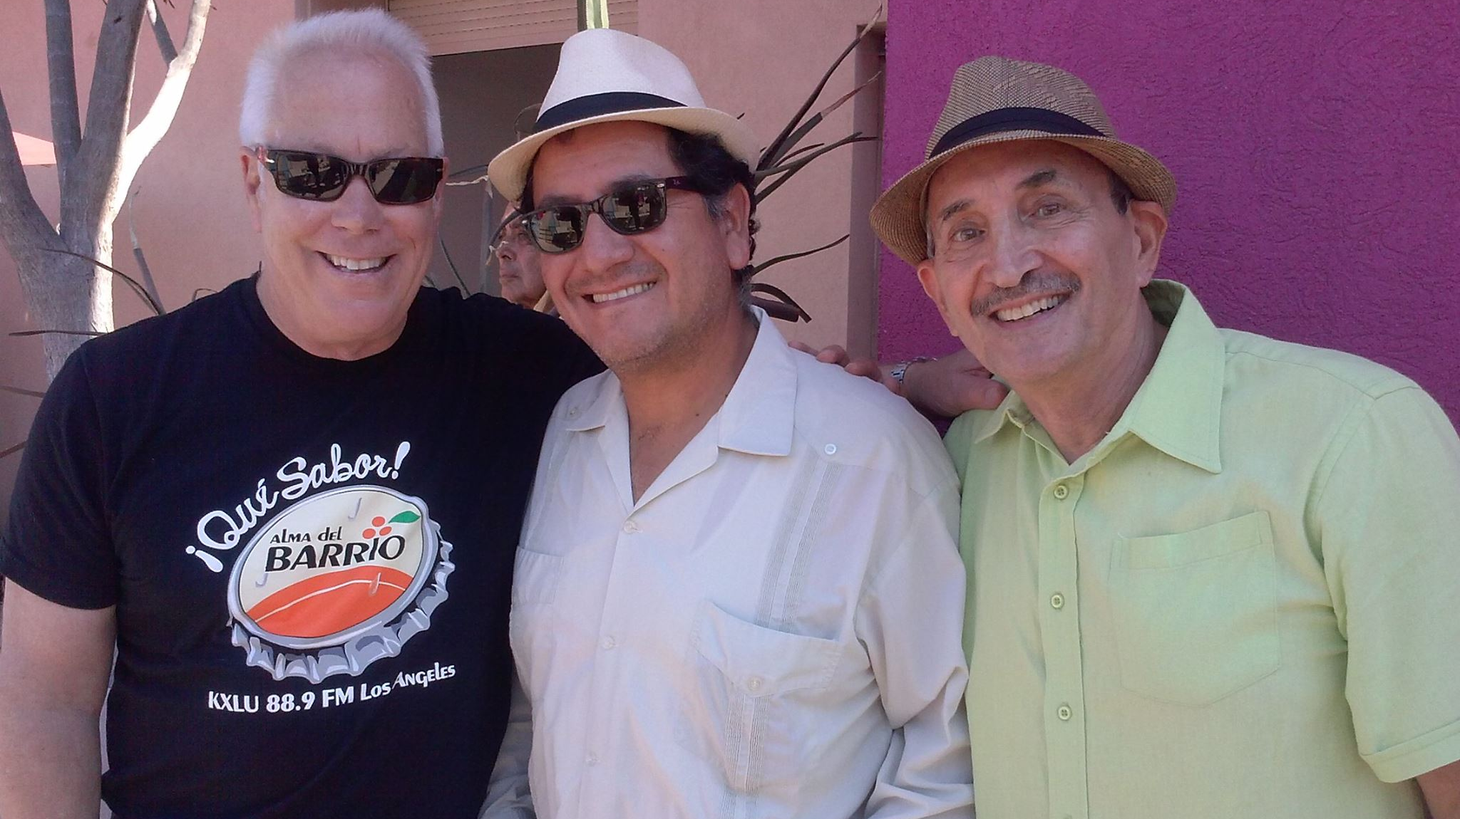 Tom Schnabel at left with radio journalist Betto Arcos and Alan Geik, who co-hosted KCRW's long-running tropical Latin show, Latin Dimensions